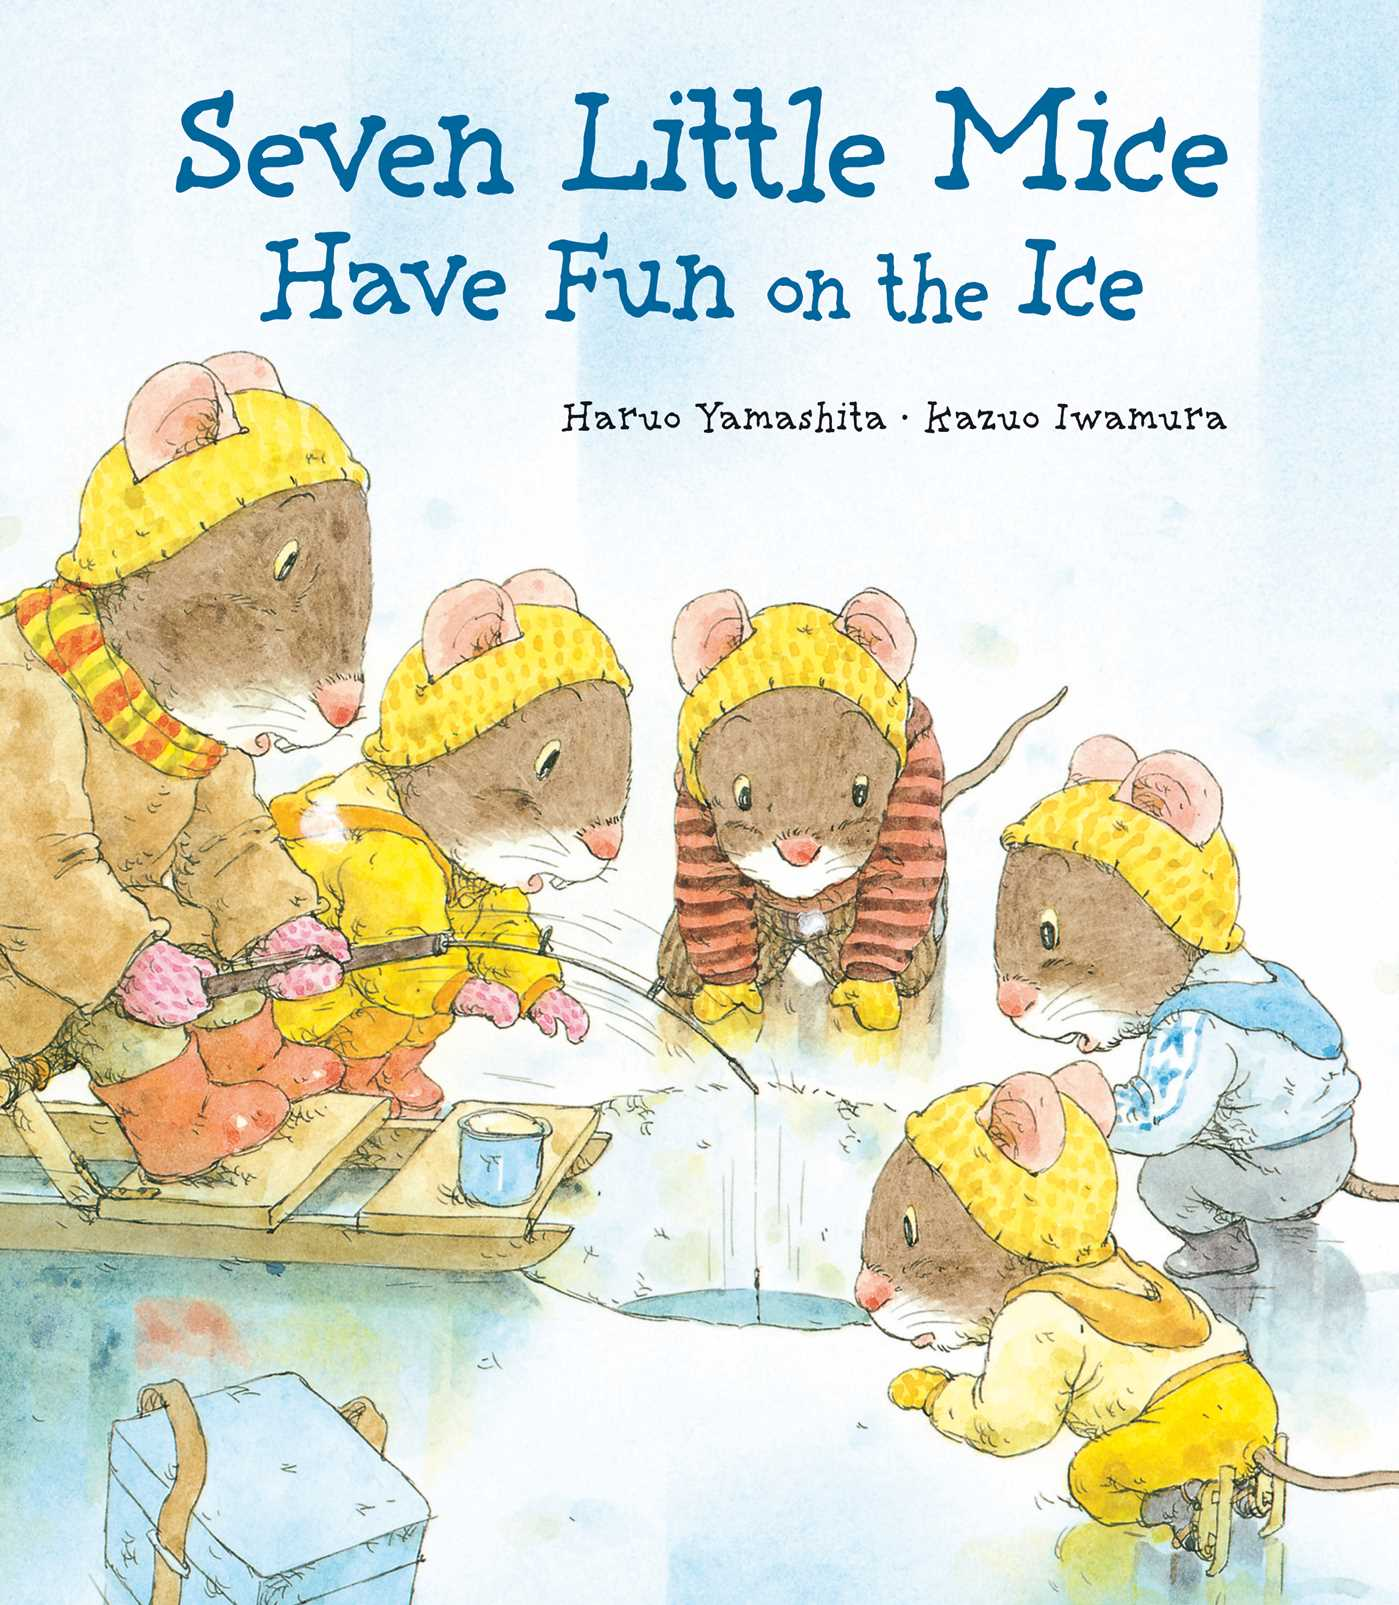 Book Cover Image (jpg): Seven Little Mice Have Fun on the Ice